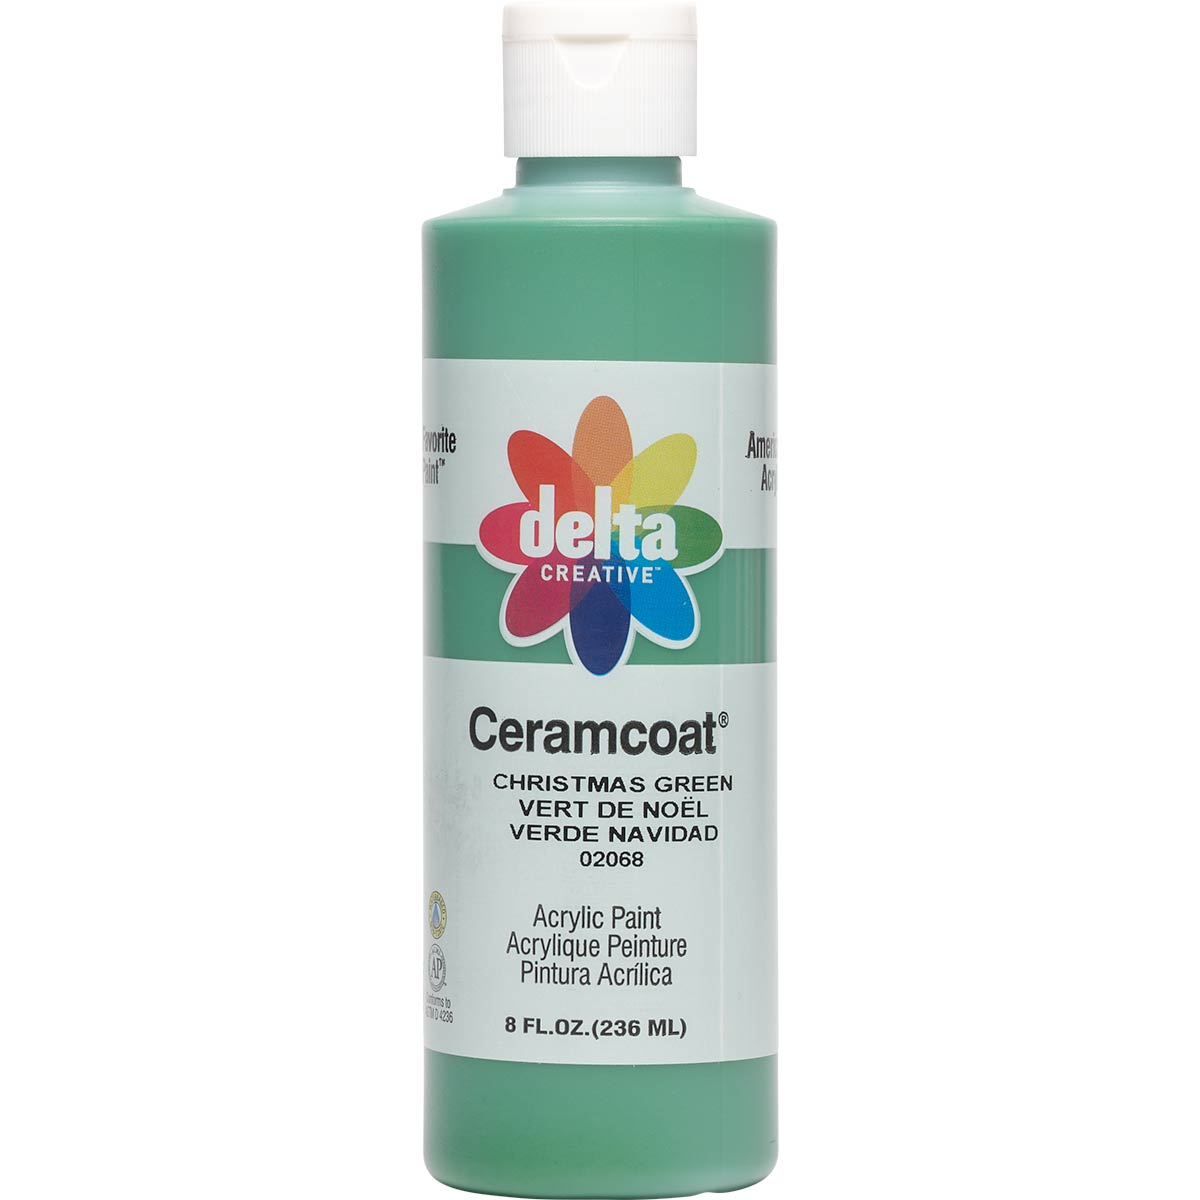 Delta Ceramcoat ® Acrylic Paint - Christmas Green, 8 oz.